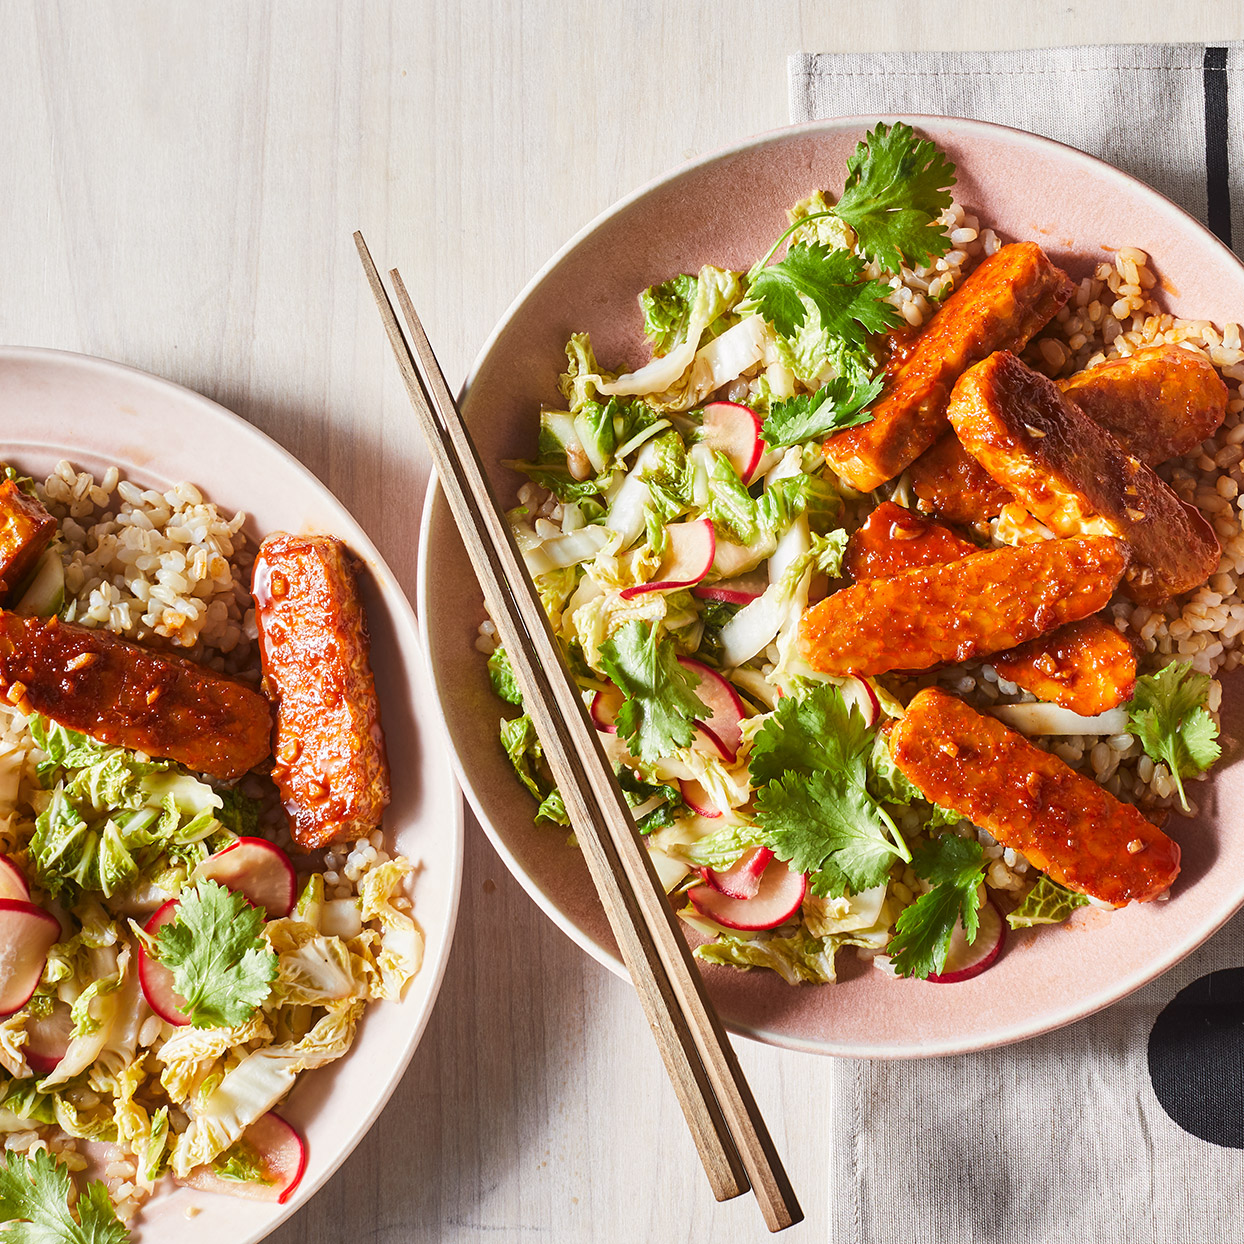 Korean BBQ Tempeh Grain Bowl Trusted Brands